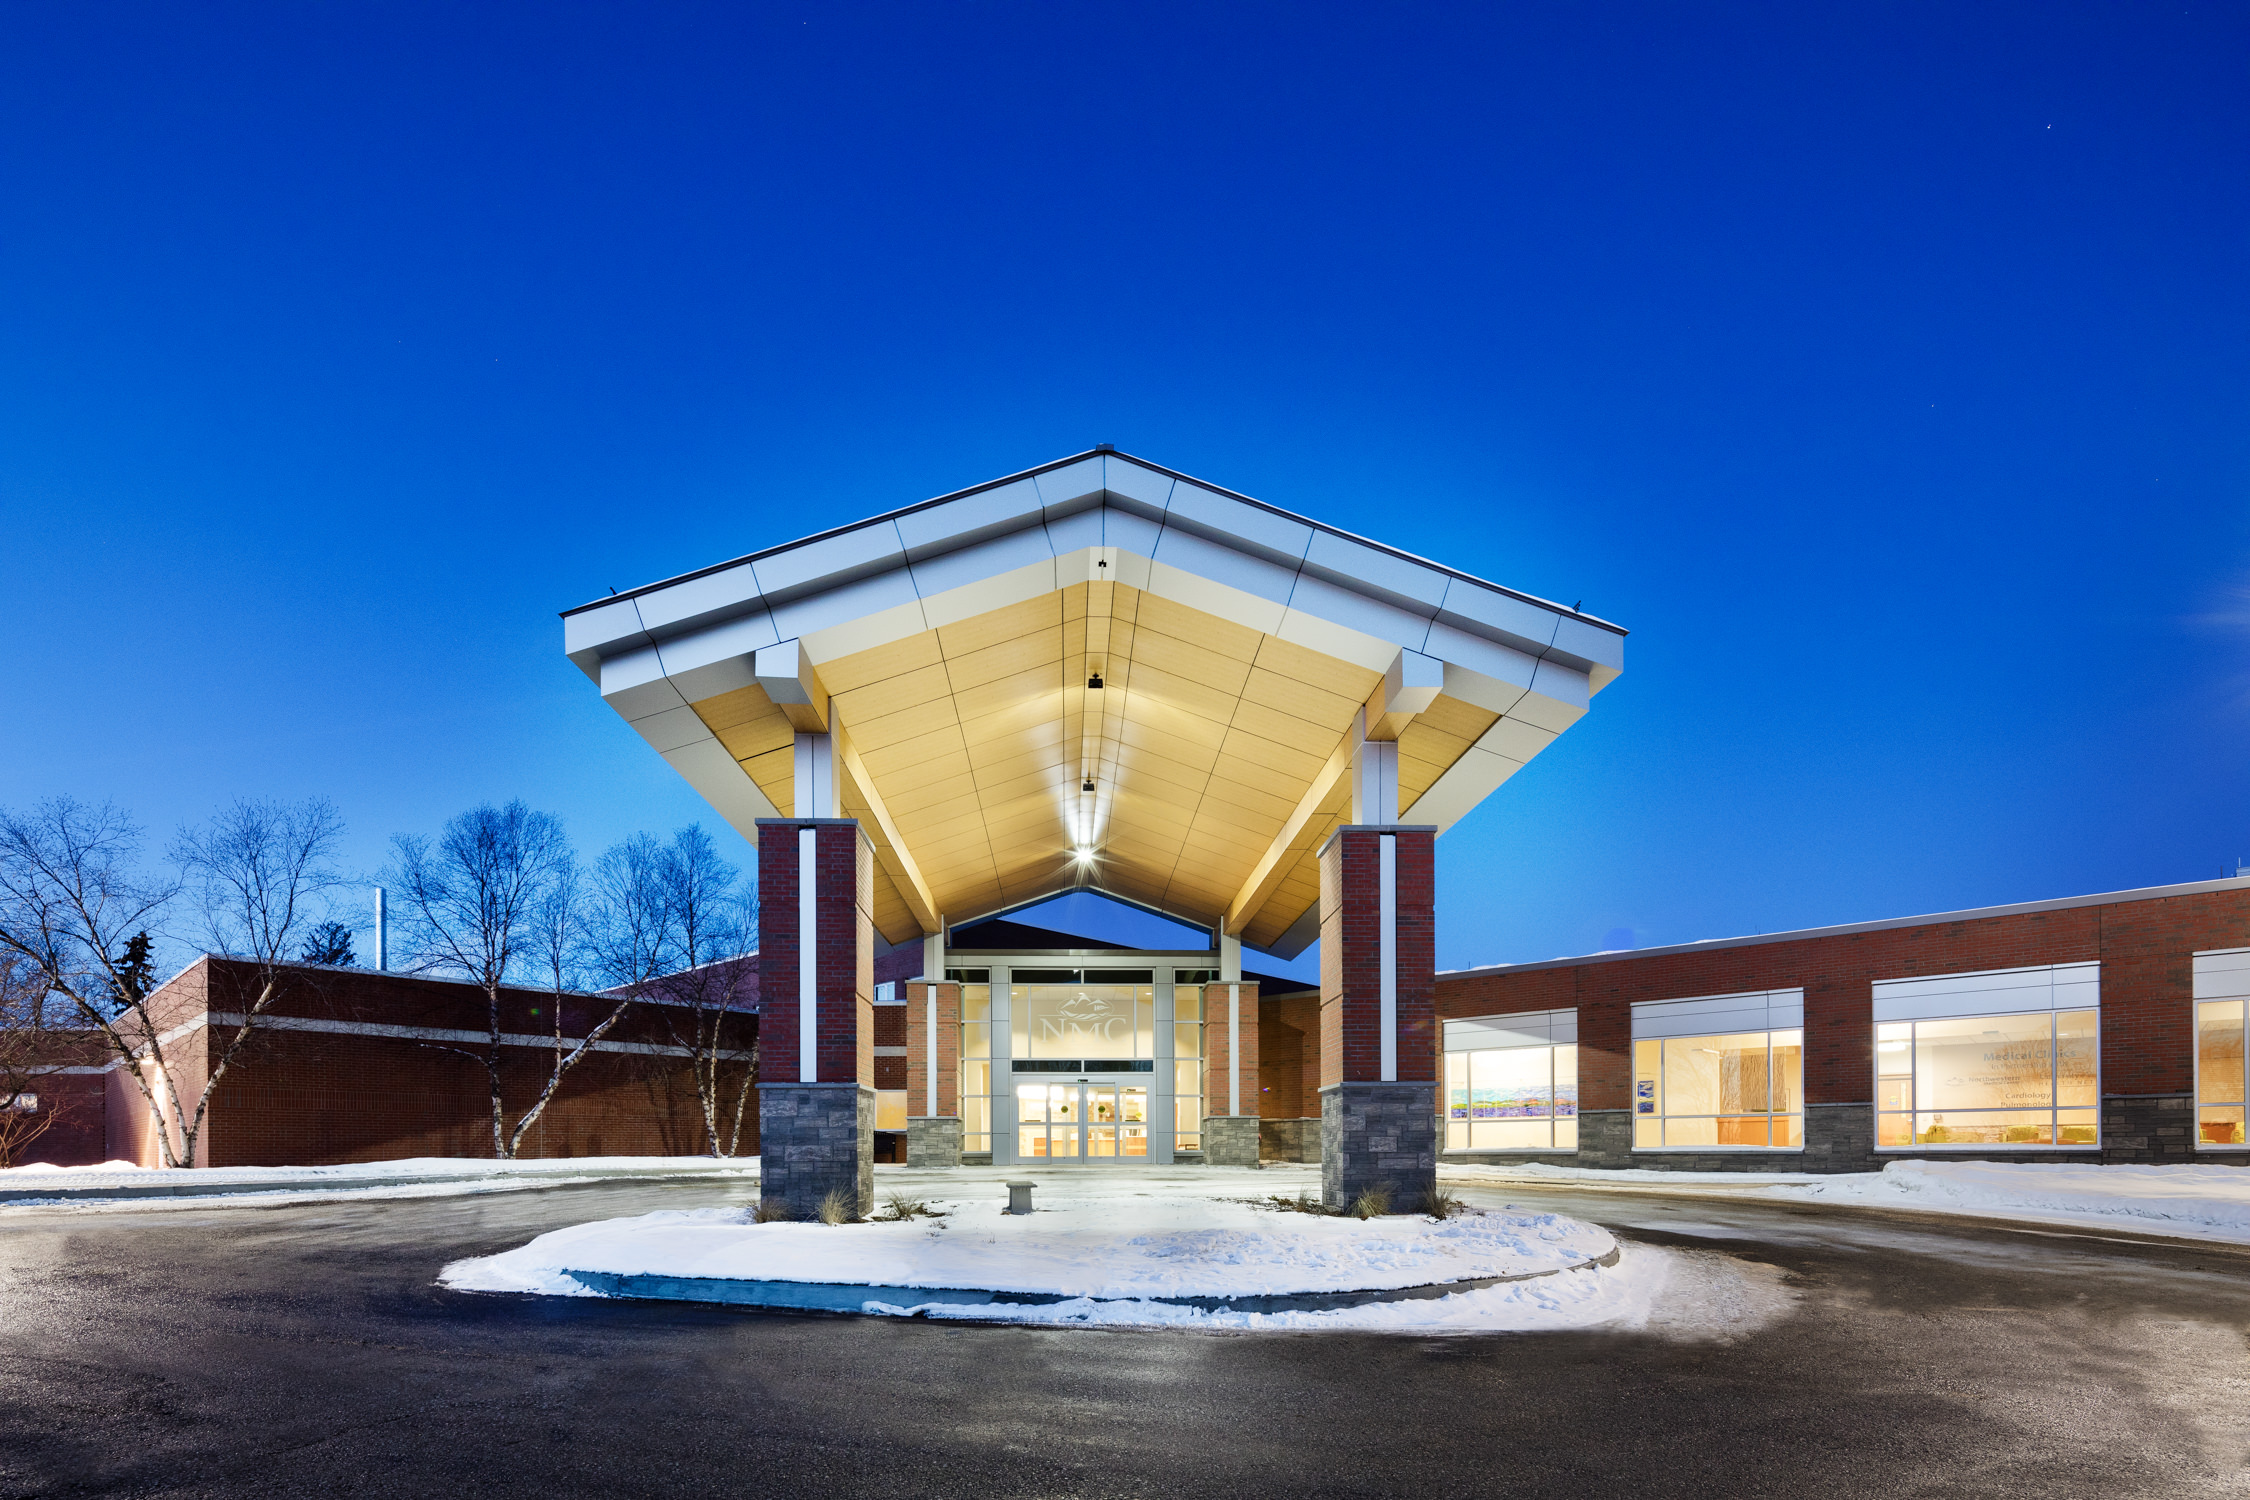 Exterior photo of the main entrance of Northwestern Medical Center in Saint Albans Vermont by commercial photographer Stina Booth